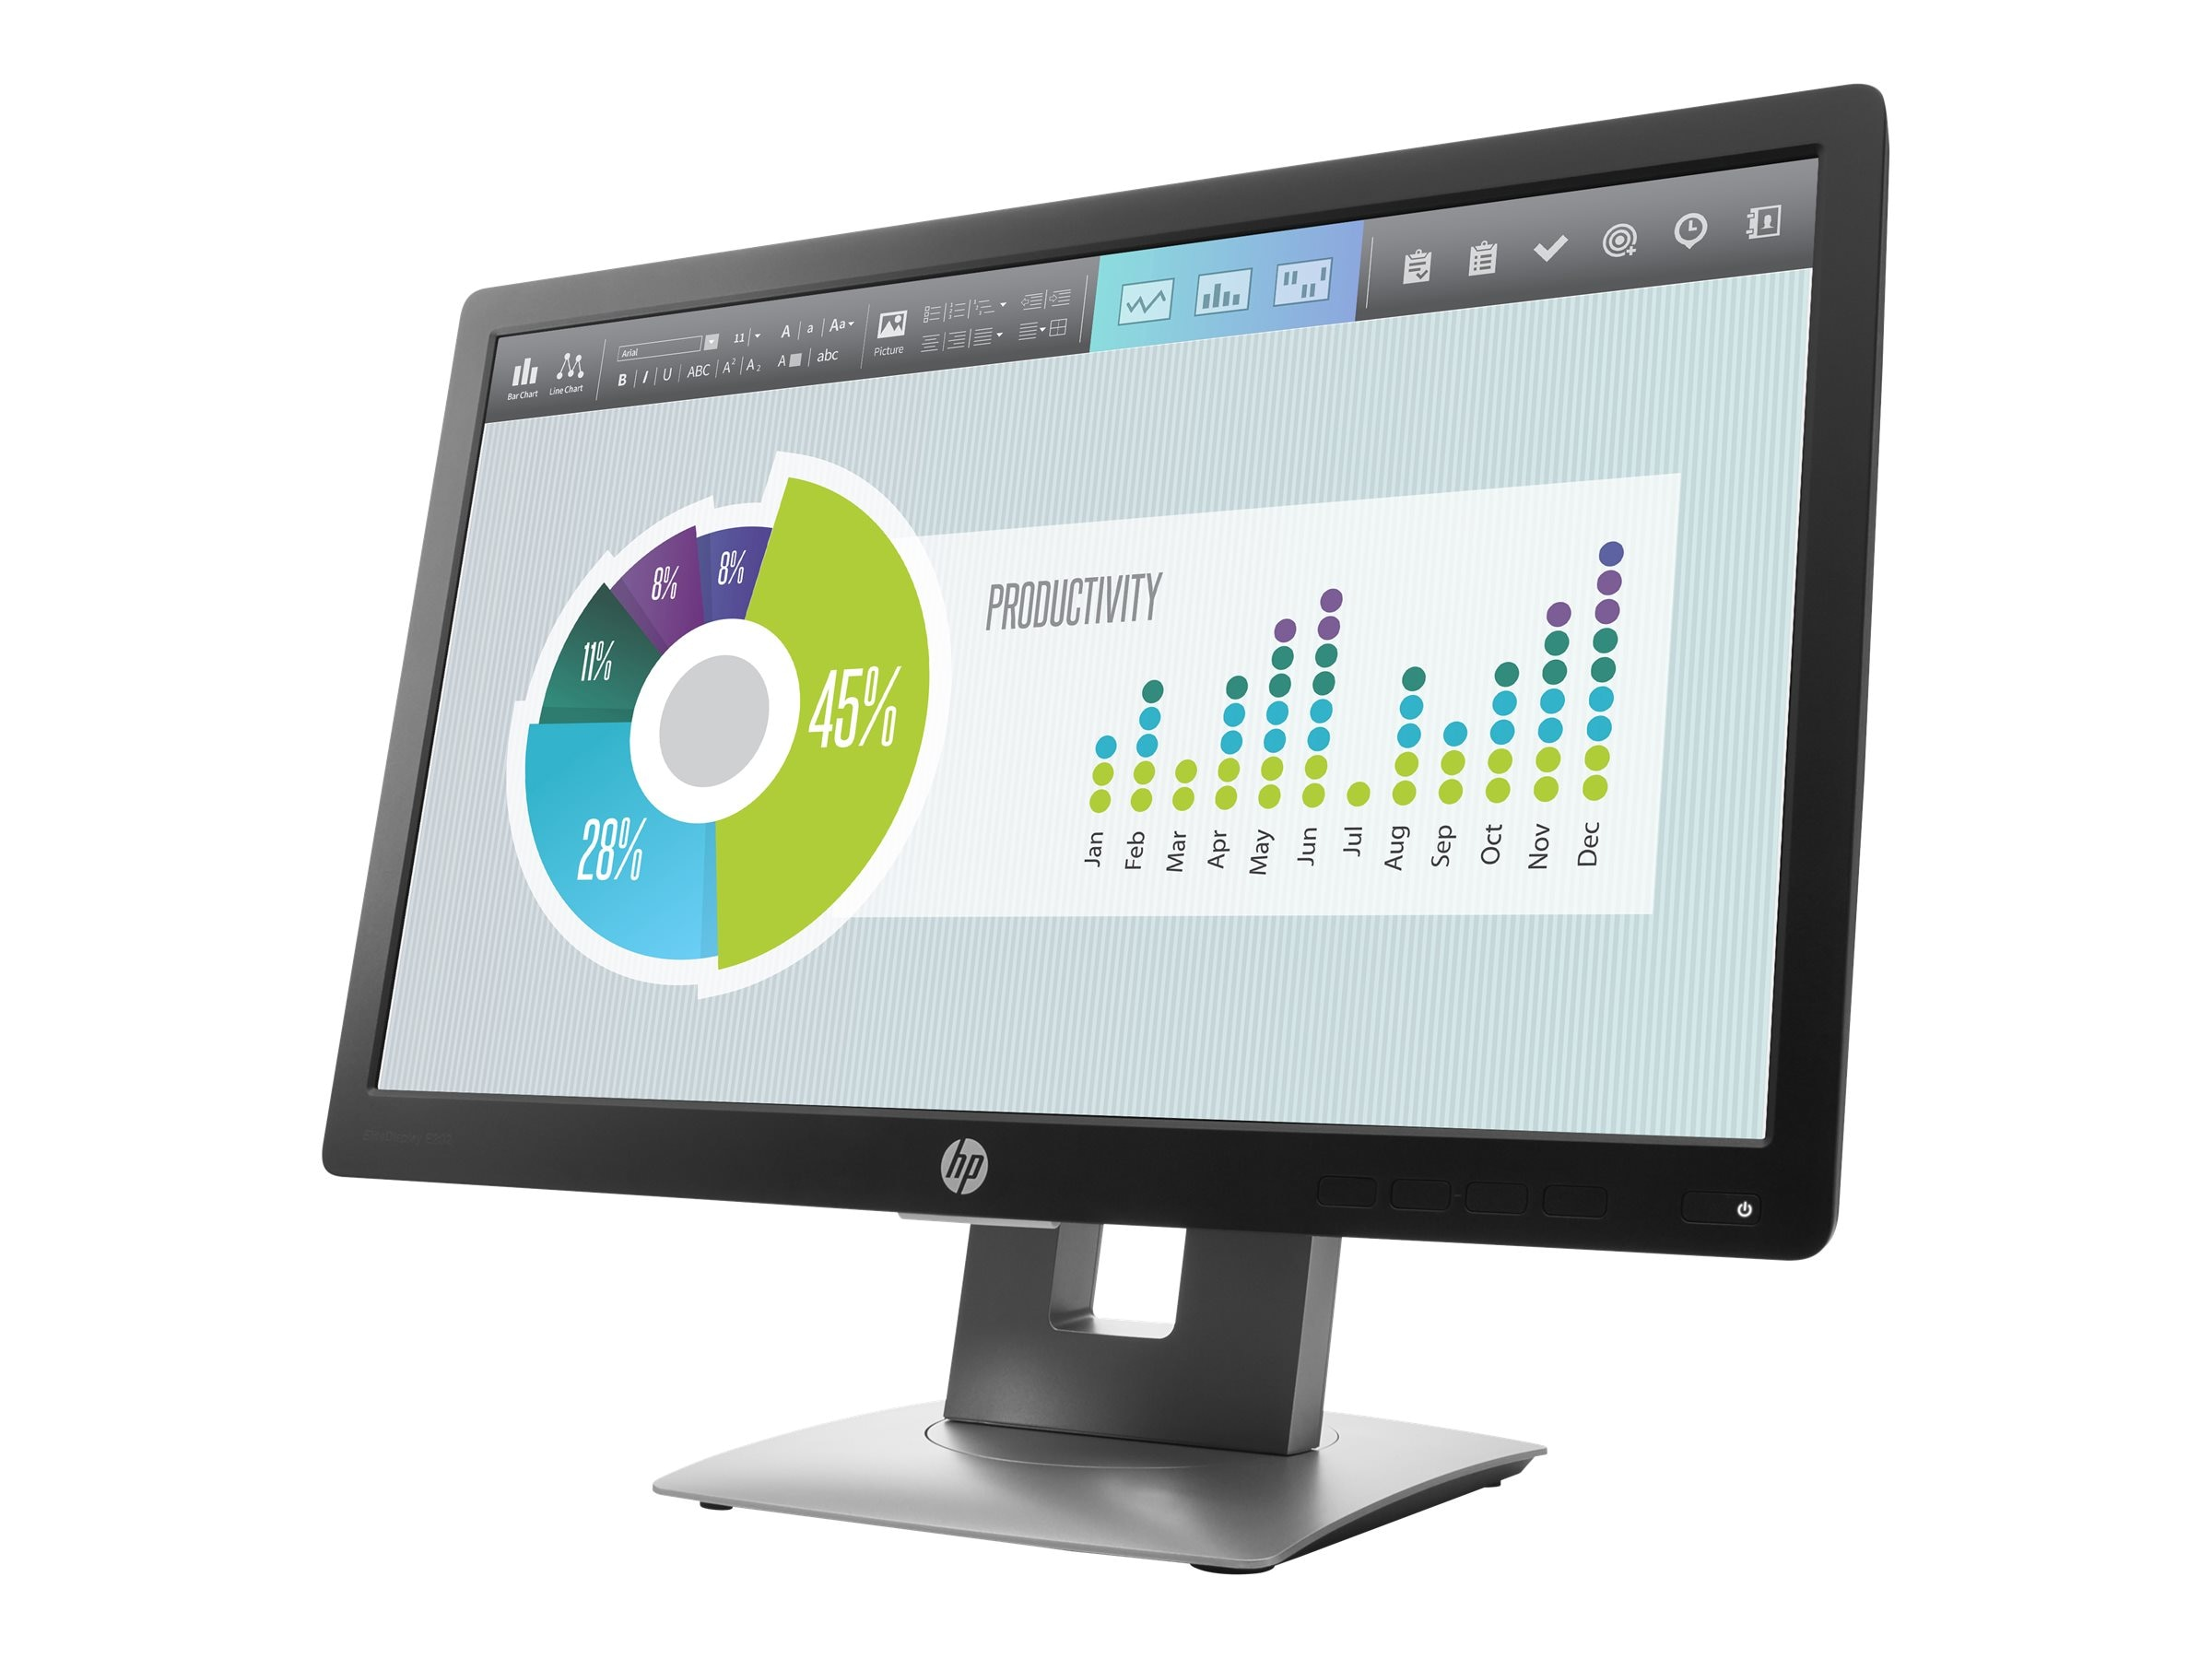 HP 20 E202 LED-LCD Monitor, Black, M1F41AA#ABA